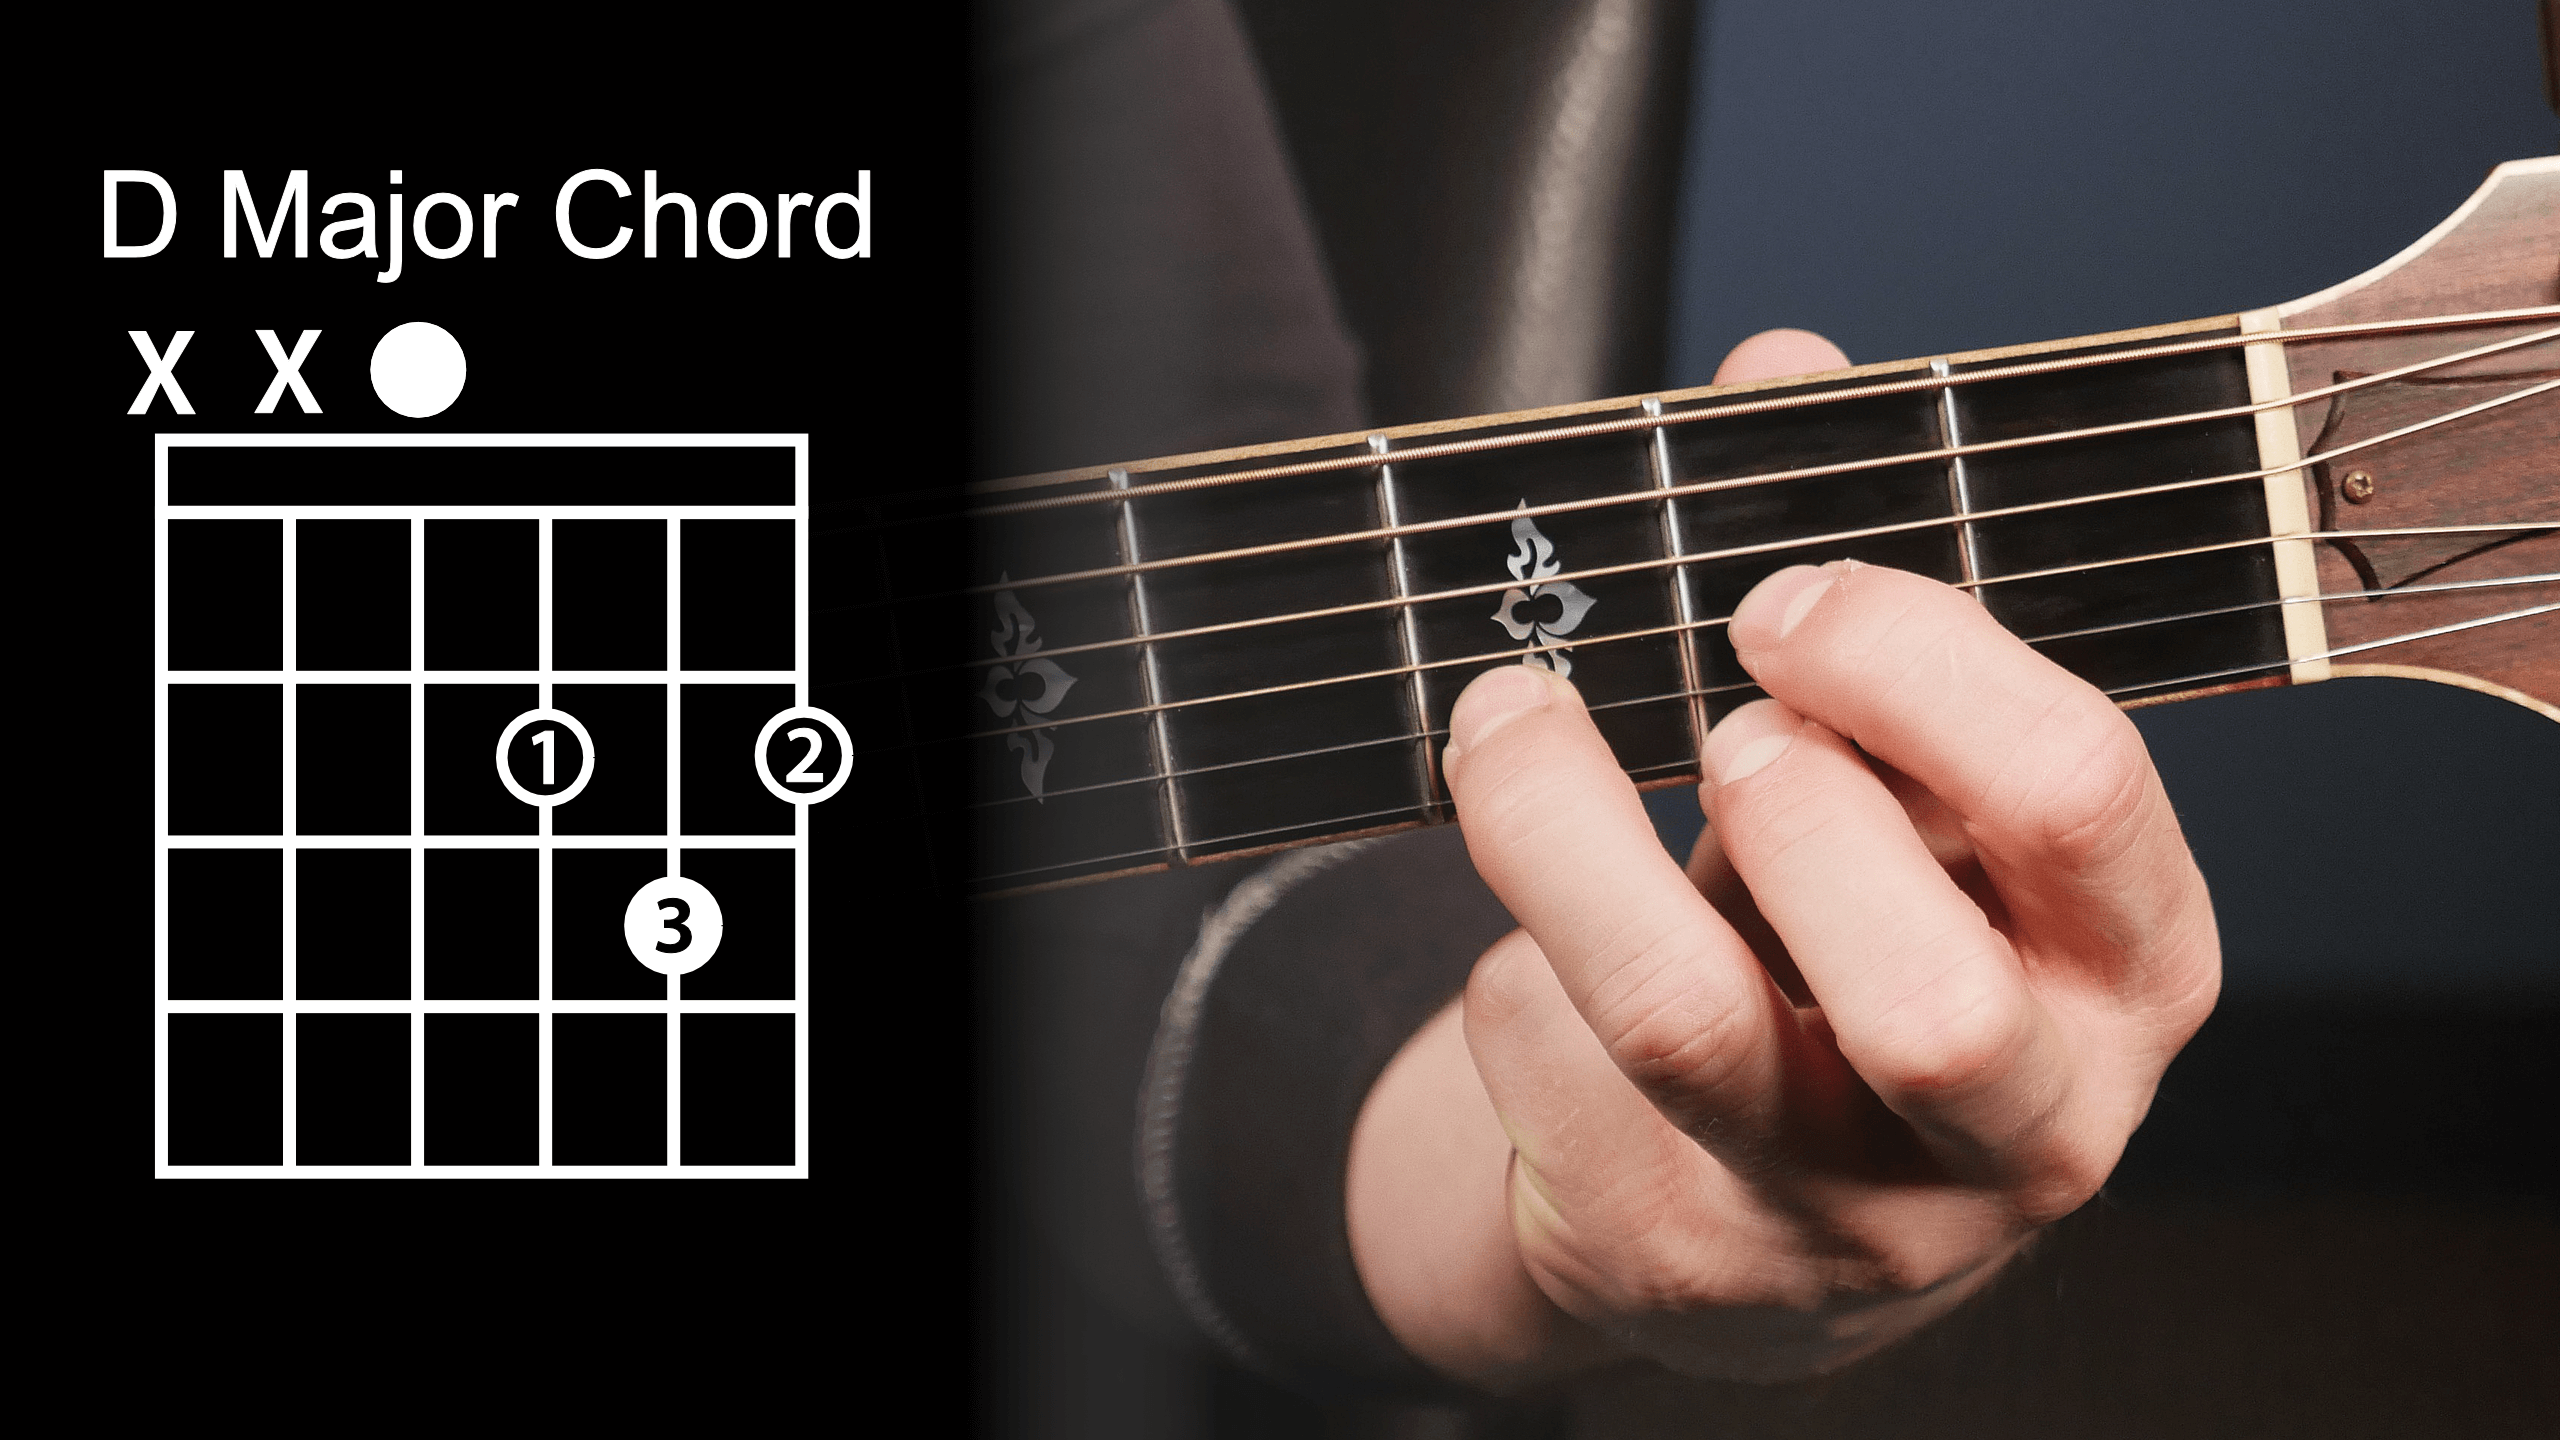 Two more guitar chords beginner guitar lessons d major chord diagram hexwebz Choice Image